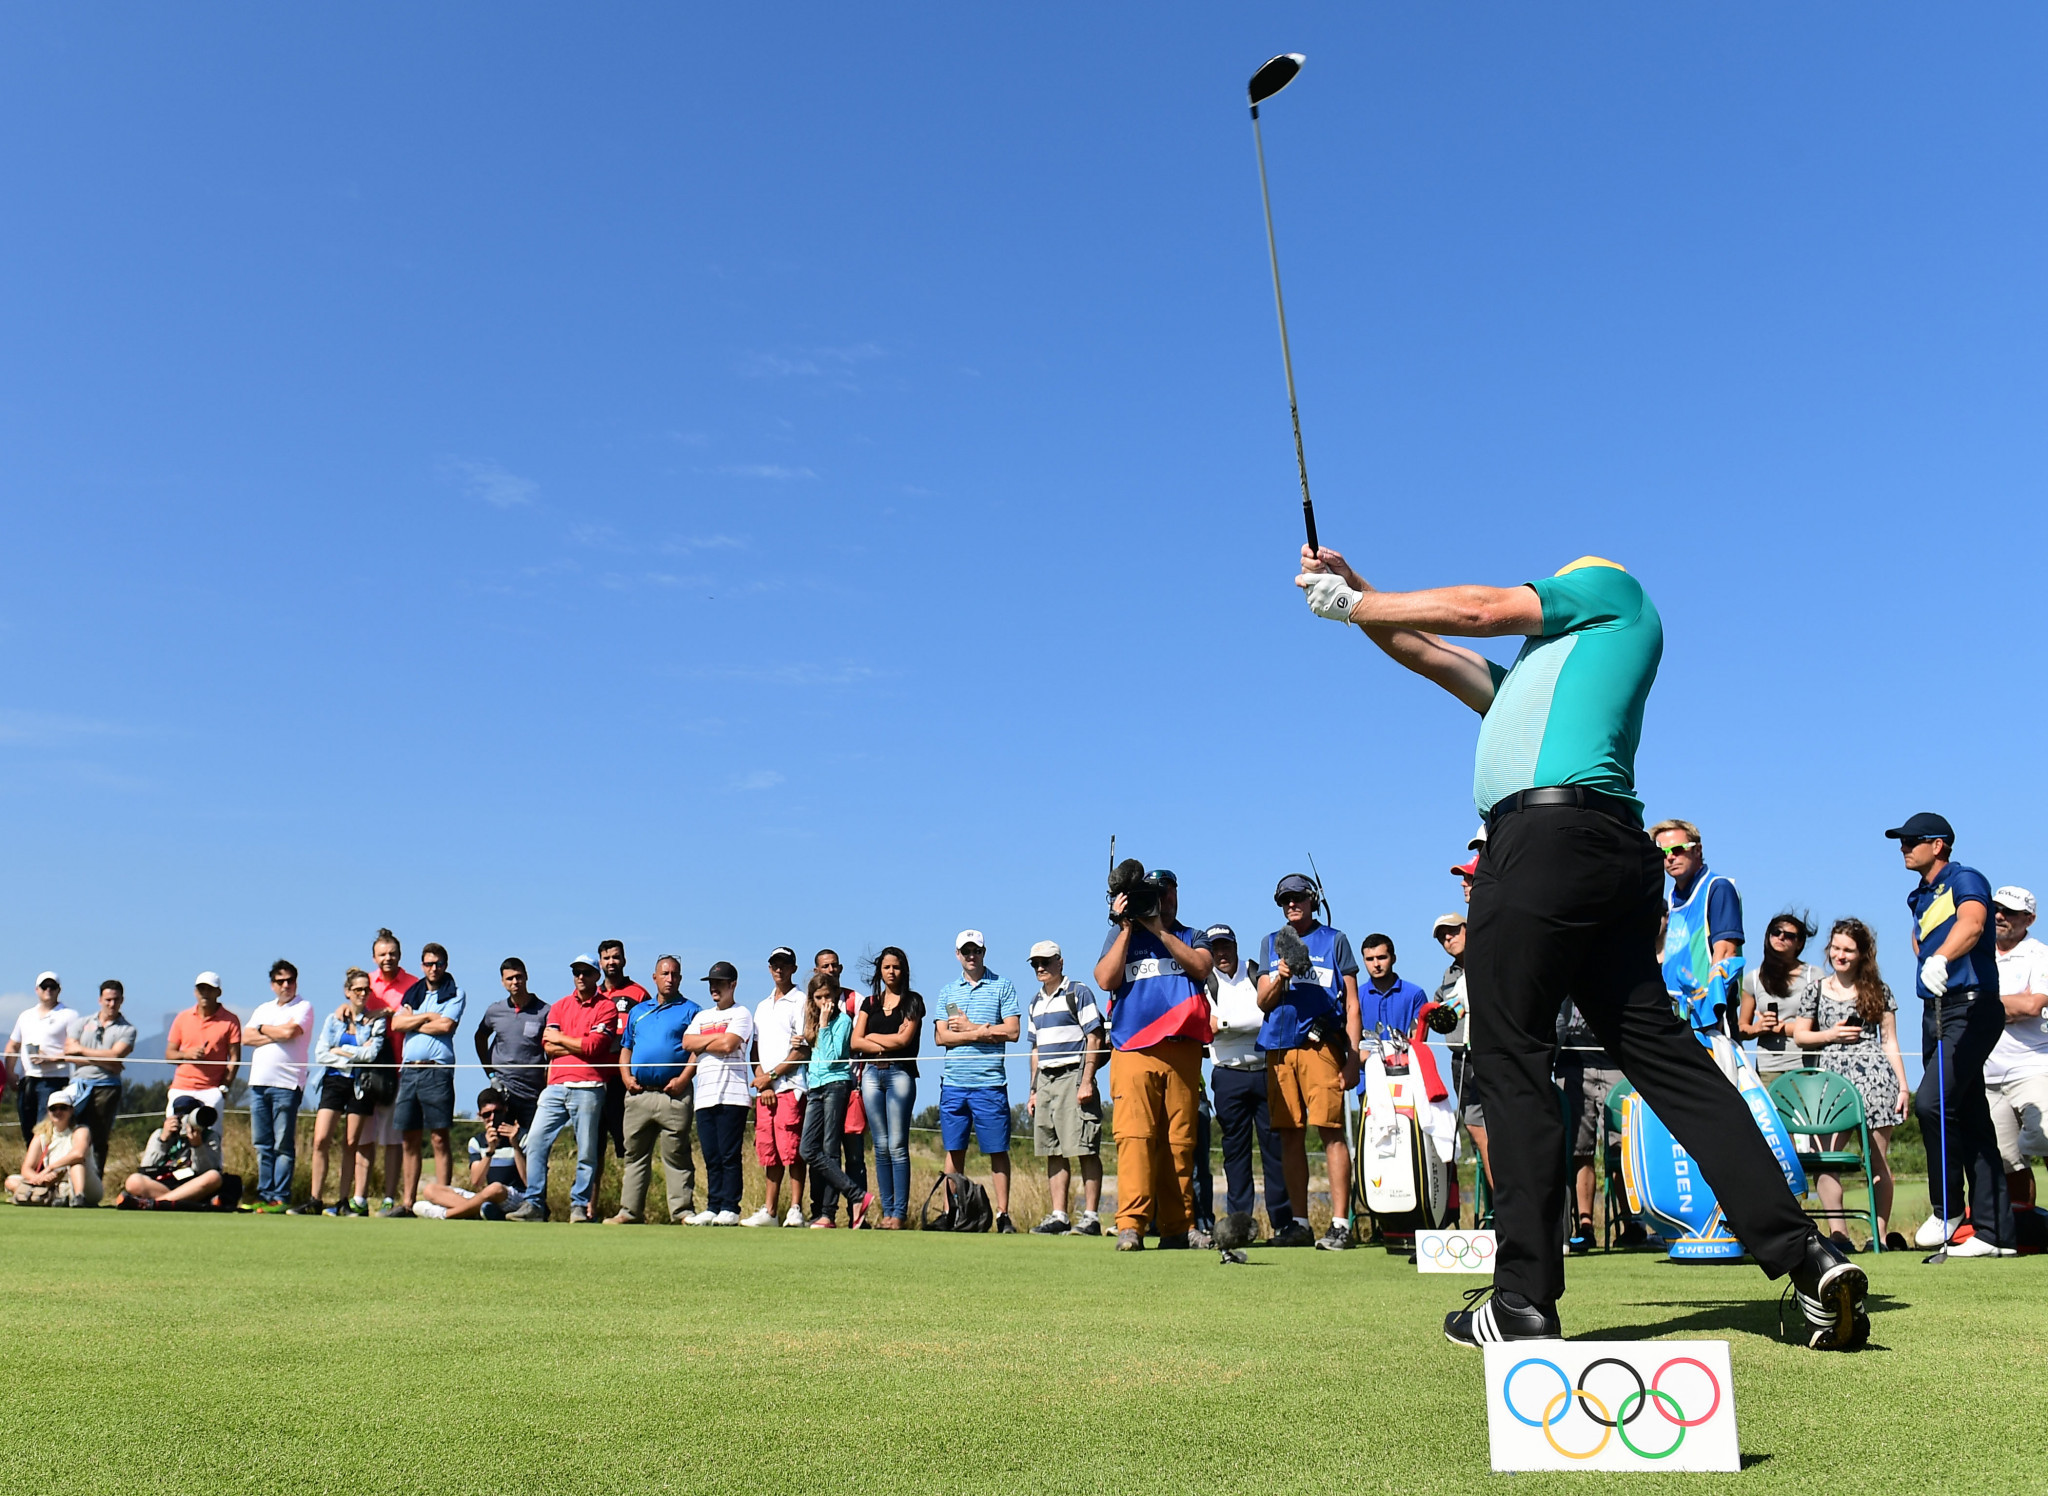 Molly Solomon oversaw NBC's production of golf's return to the Olympics at Rio 2016 ©Getty Images